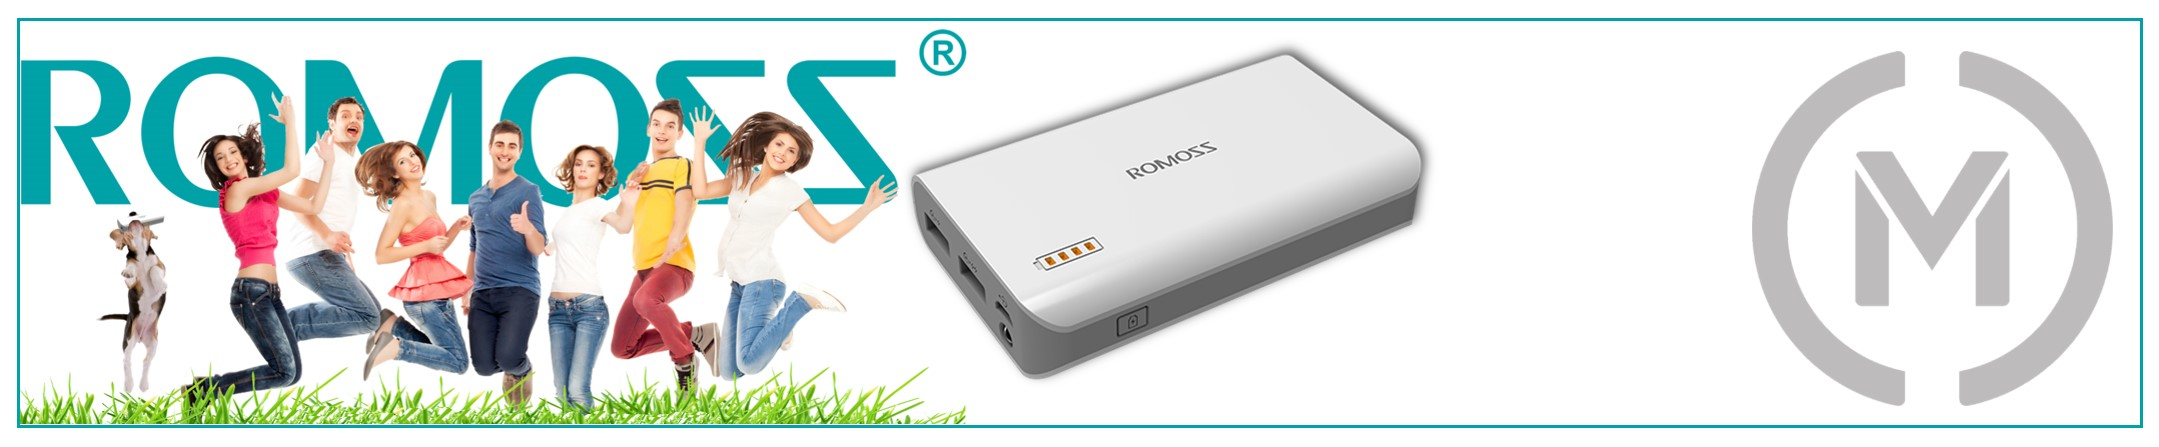 Romoss Power Banks